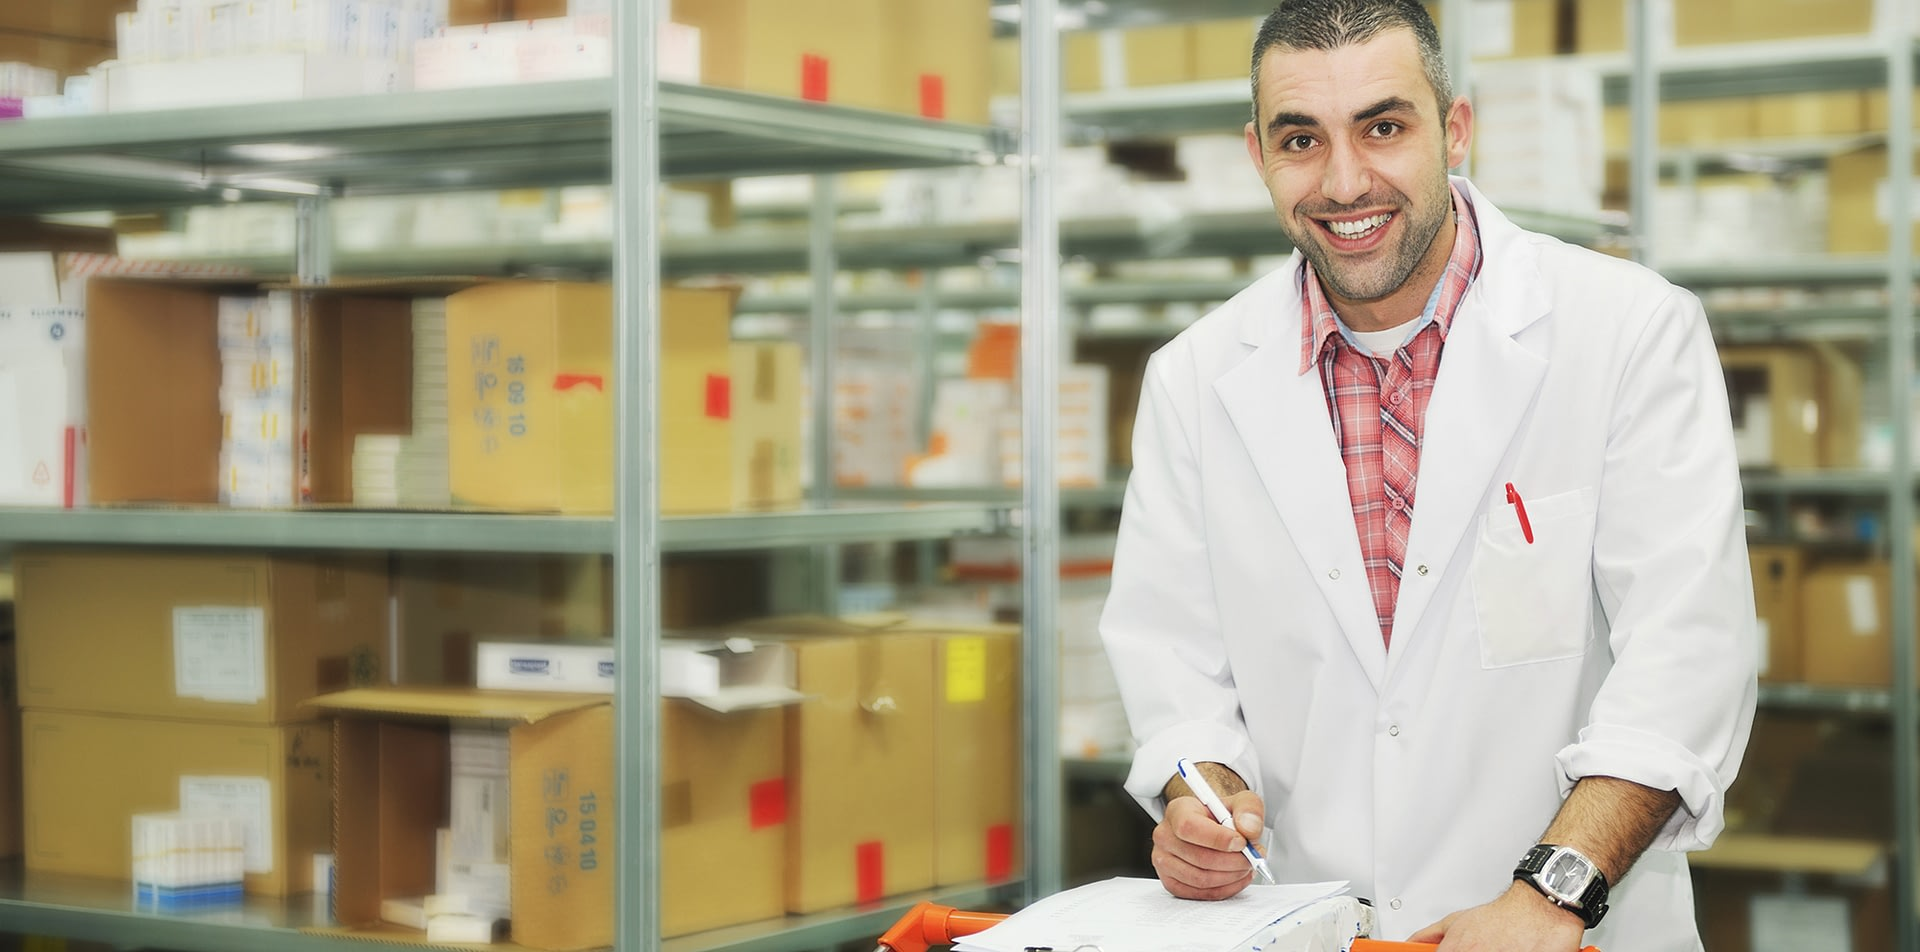 Elite Medical's asset tracking and inventory management efforts are improved with EdgeMagic.